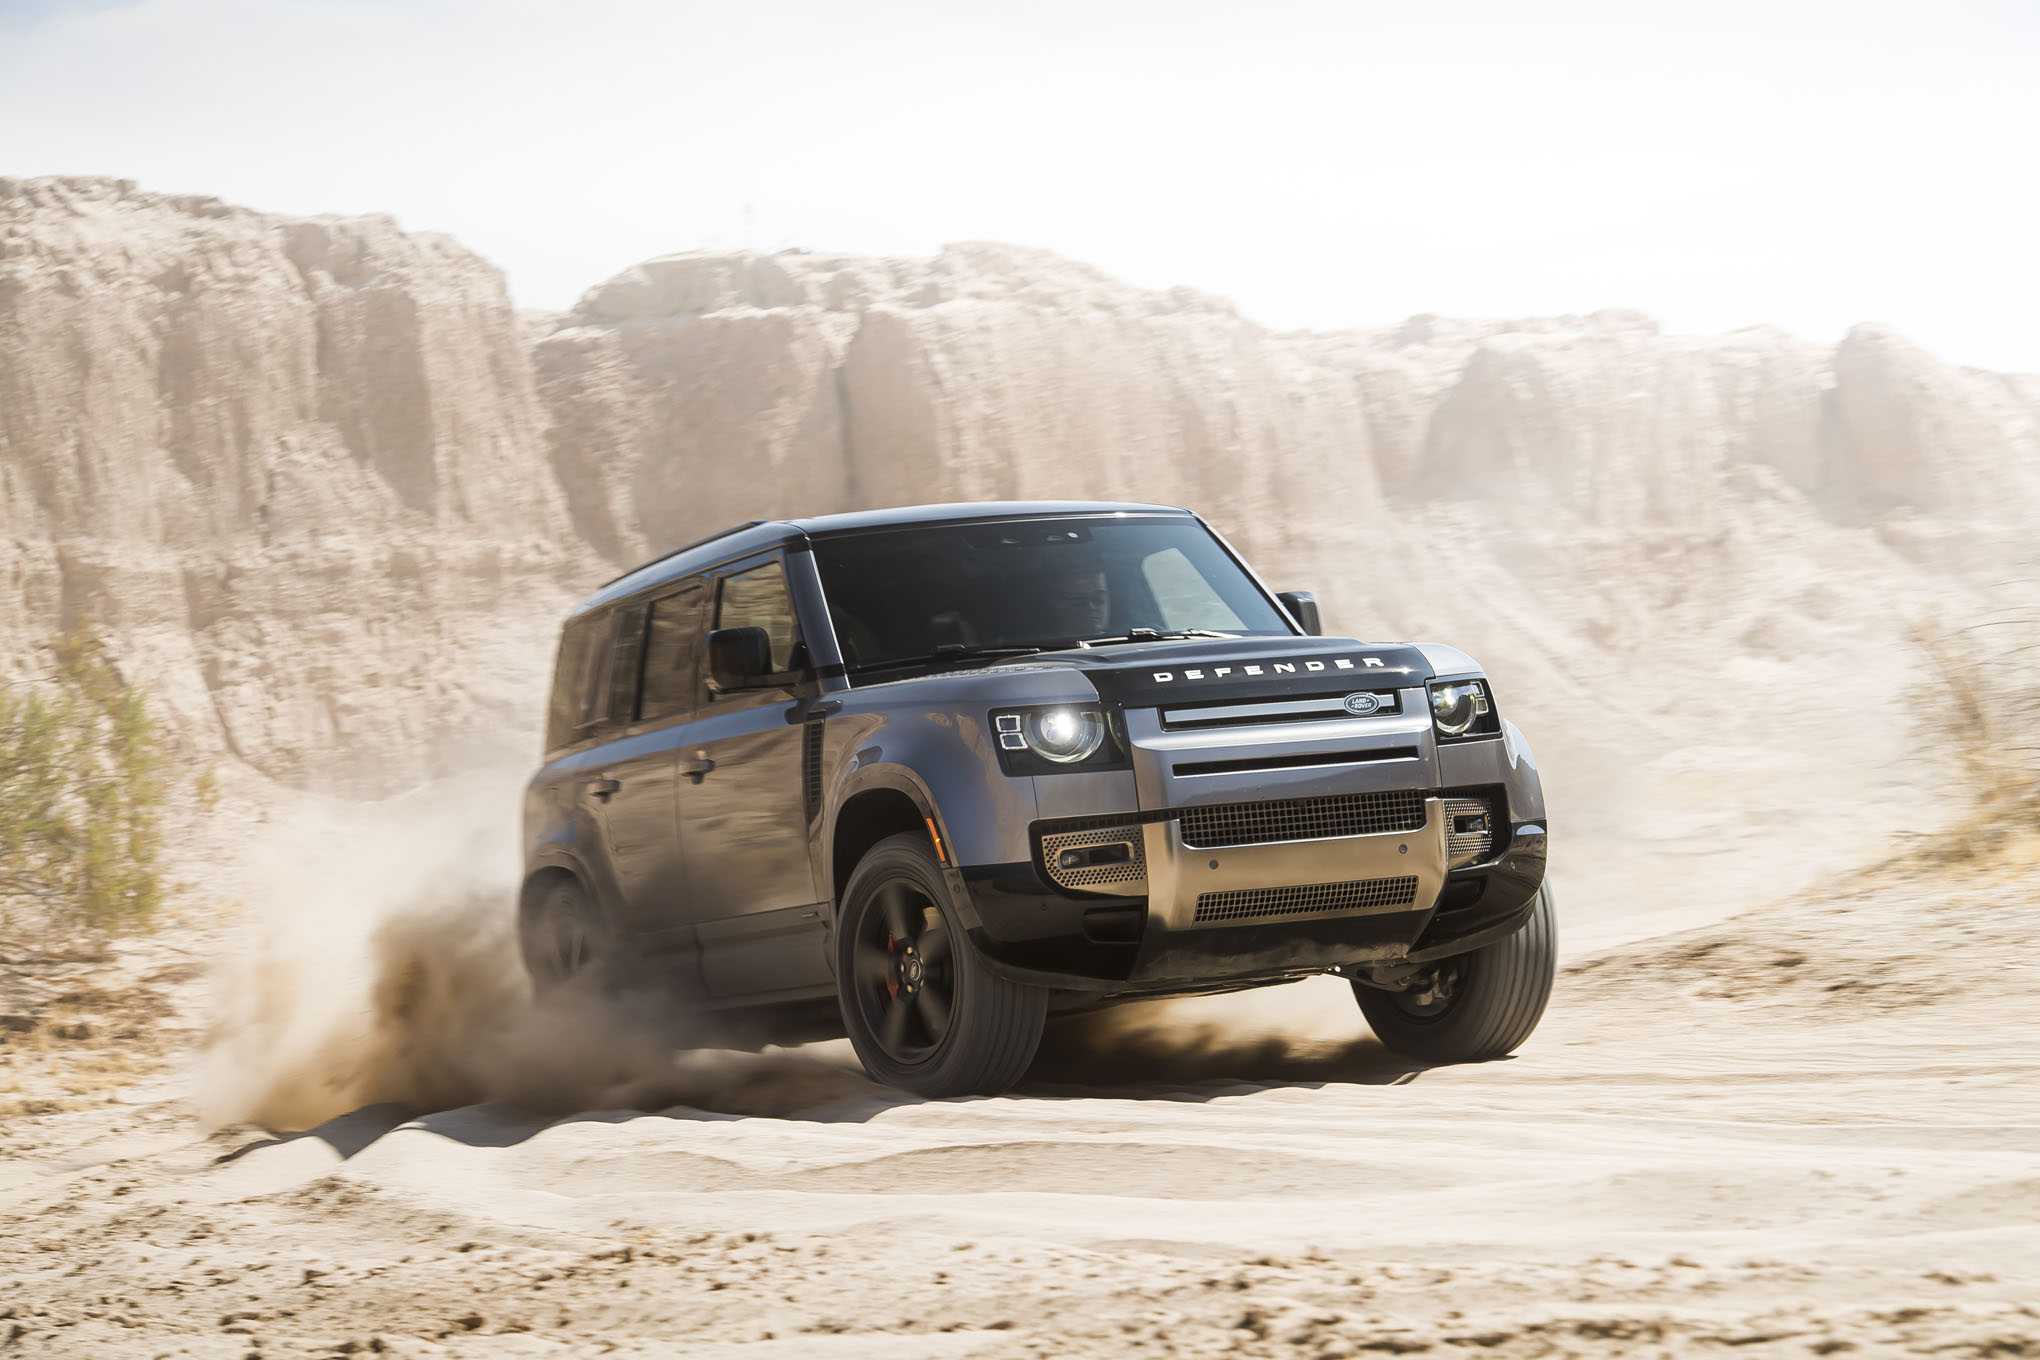 2020 Land Rover Defender 110: First Drive